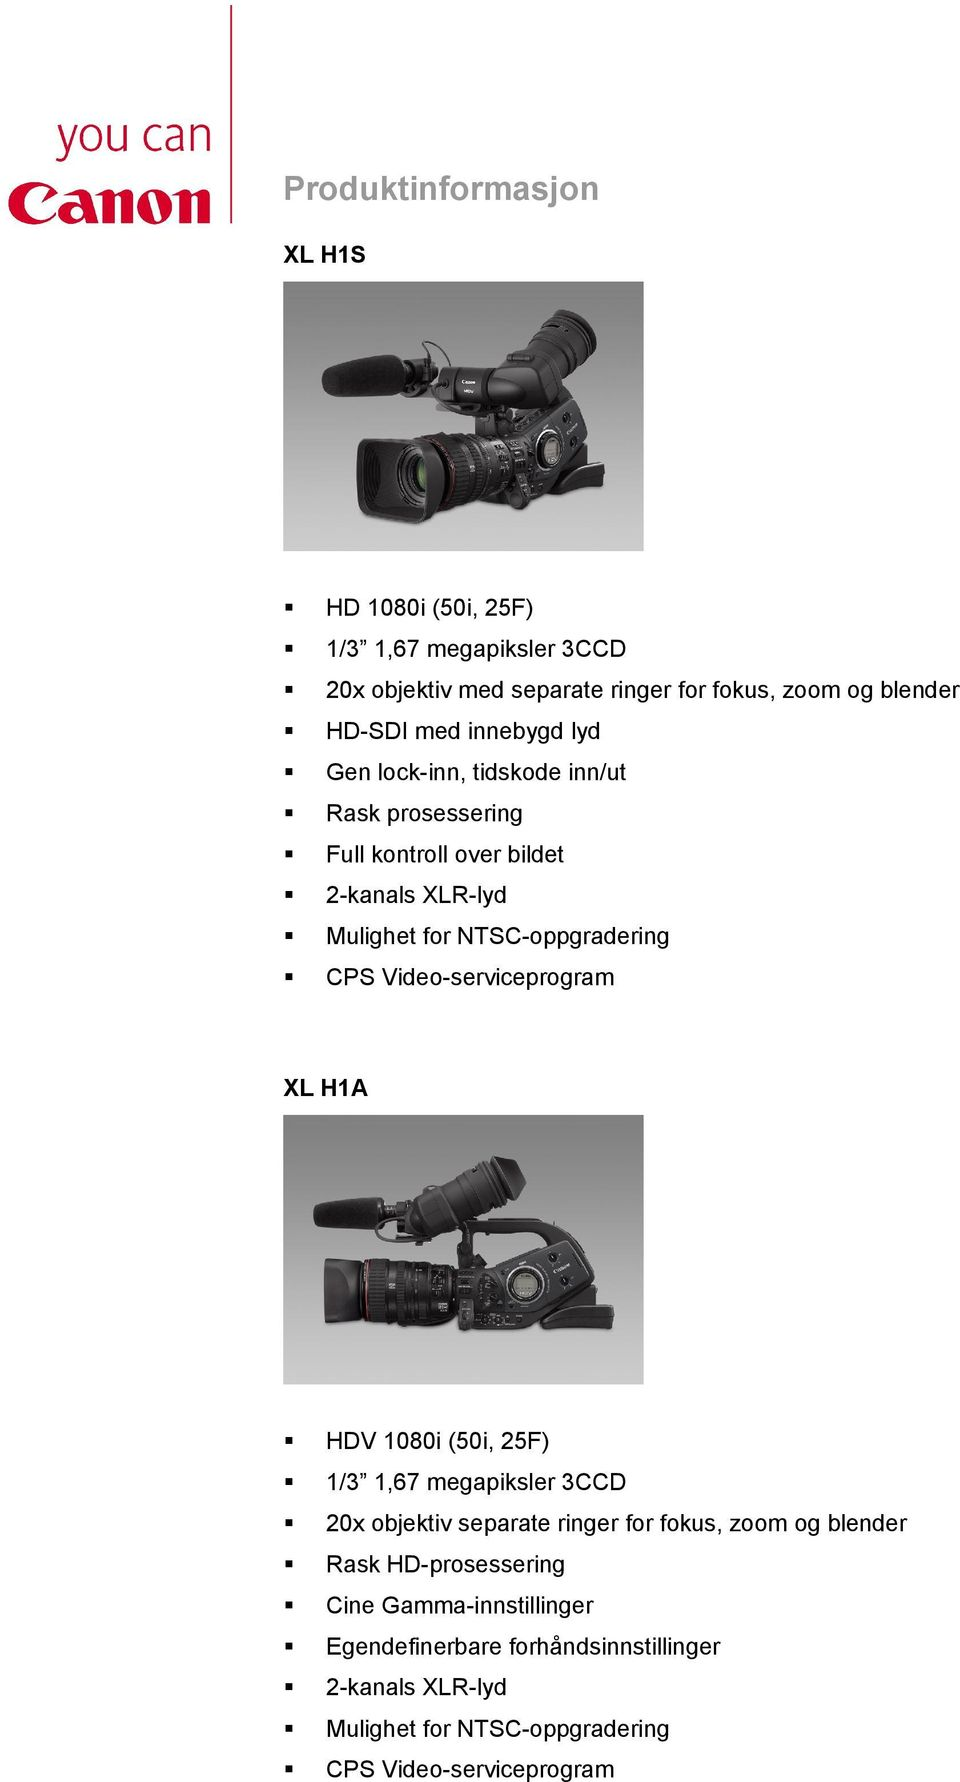 Video-serviceprogram XL H1A HDV 1080i (50i, 25F) 1/3 1,67 megapiksler 3CCD 20x objektiv separate ringer for fokus, zoom og blender Rask